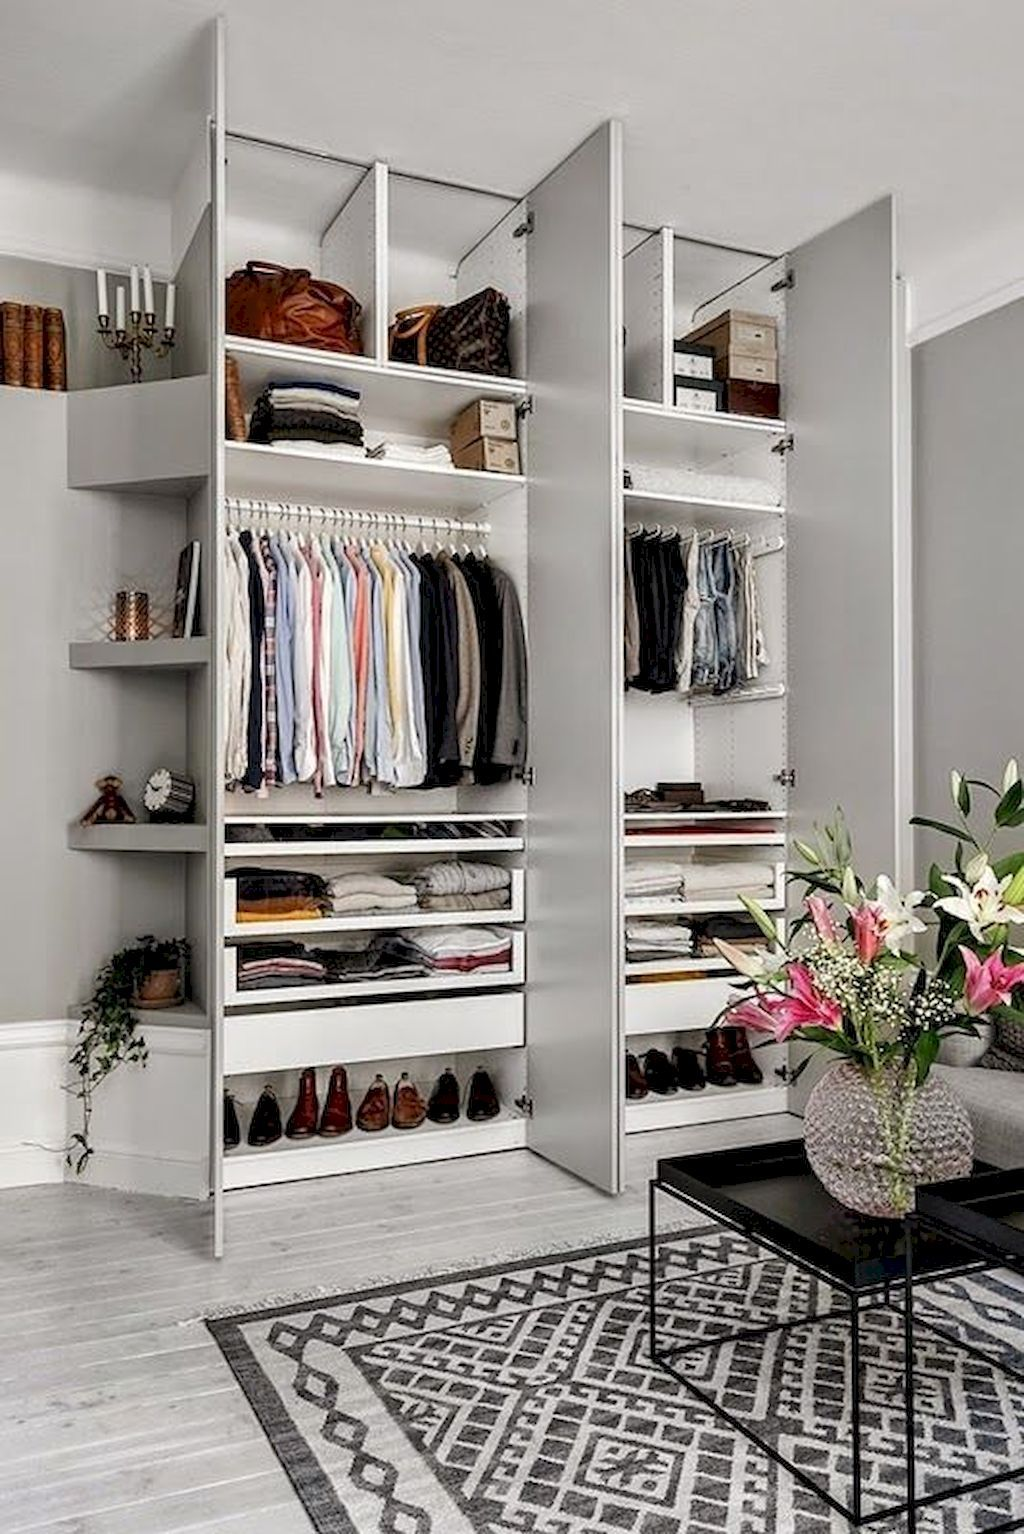 Diy Fitted Wardrobes Save House And Add Type Spare Bedroom Closets Diy Walk In Closet Ikea Wardrobe Storage